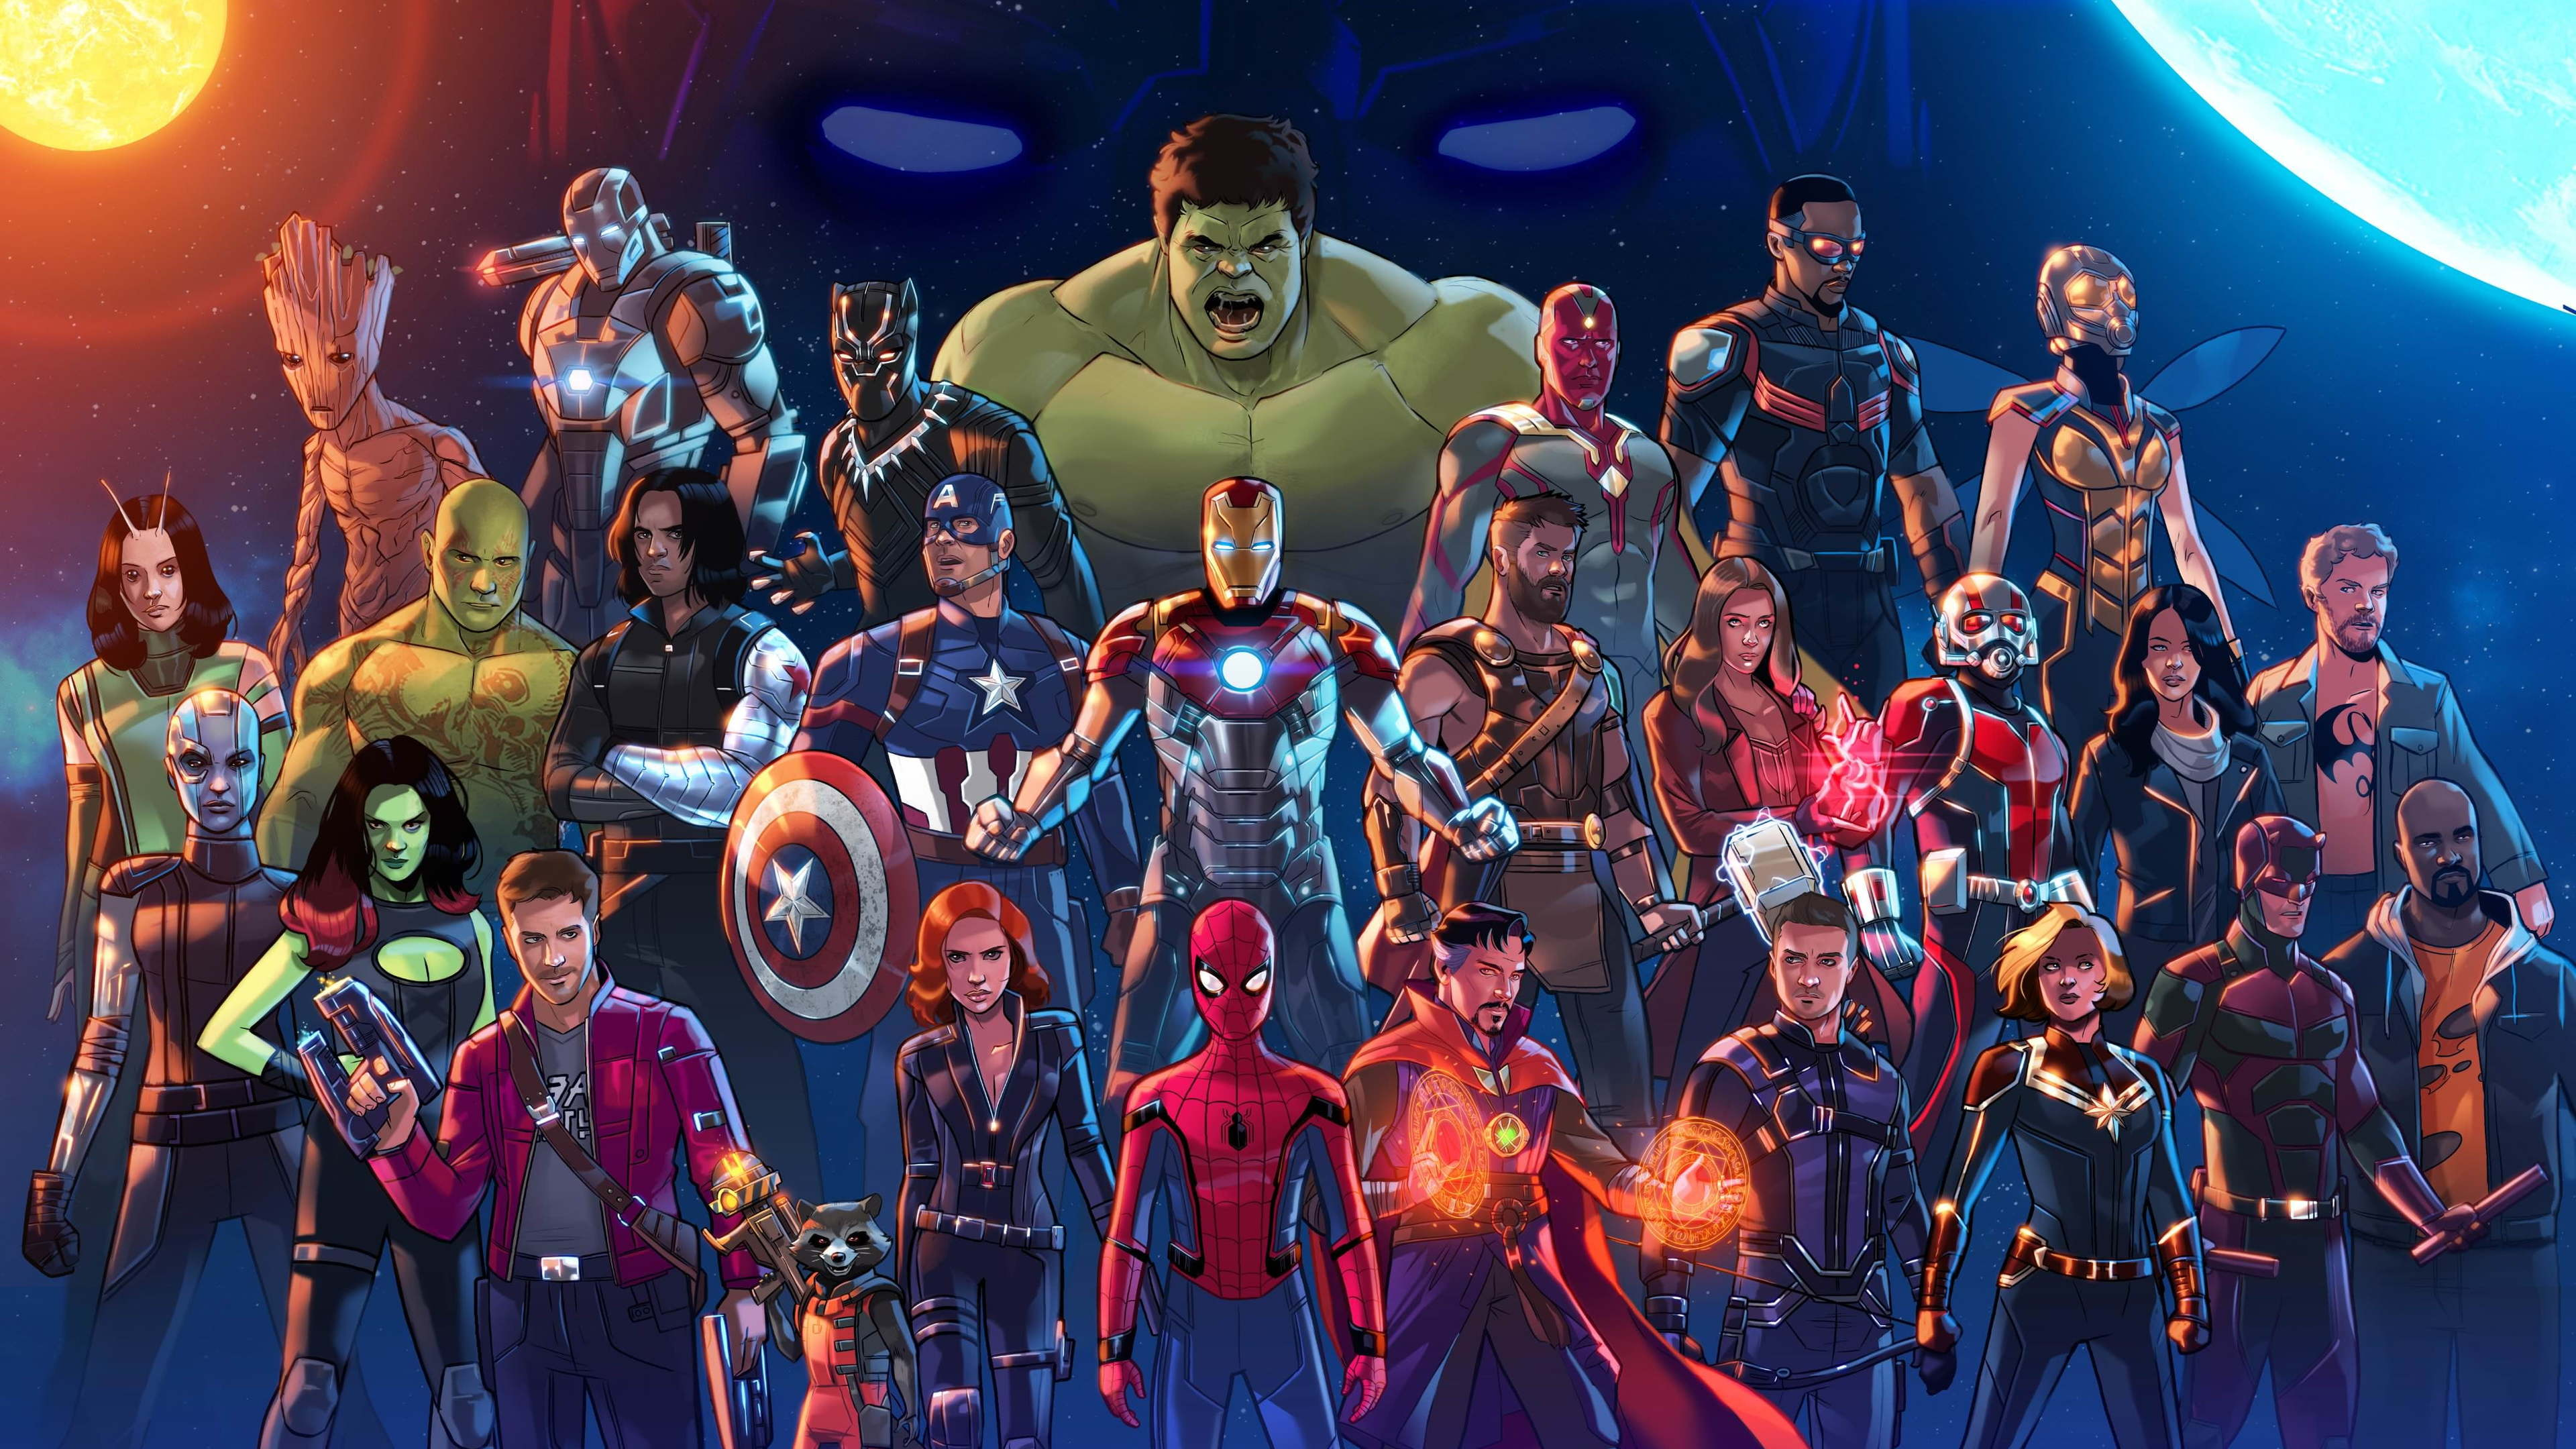 marvel cinematic universe artwork5k 1536523877 - Marvel Cinematic Universe Artwork5k - winter solider wallpapers, wasp wallpapers, war machine wallpapers, vision wallpapers, thor wallpapers, superheroes wallpapers, star lord wallpapers, spiderman wallpapers, rocket raccoon wallpapers, mantis wallpapers, luke cage wallpapers, jessica jones wallpapers, iron man wallpapers, iron fist wallpapers, hulk wallpapers, hd-wallpapers, hawkeye wallpapers, groot wallpapers, gamora wallpapers, drax the destroyer wallpapers, digital art wallpapers, daredevil wallpapers, captain marvel wallpapers, captain america wallpapers, black widow wallpapers, black panther wallpapers, artwork wallpapers, ant man wallpapers, 5k wallpapers, 4k-wallpapers